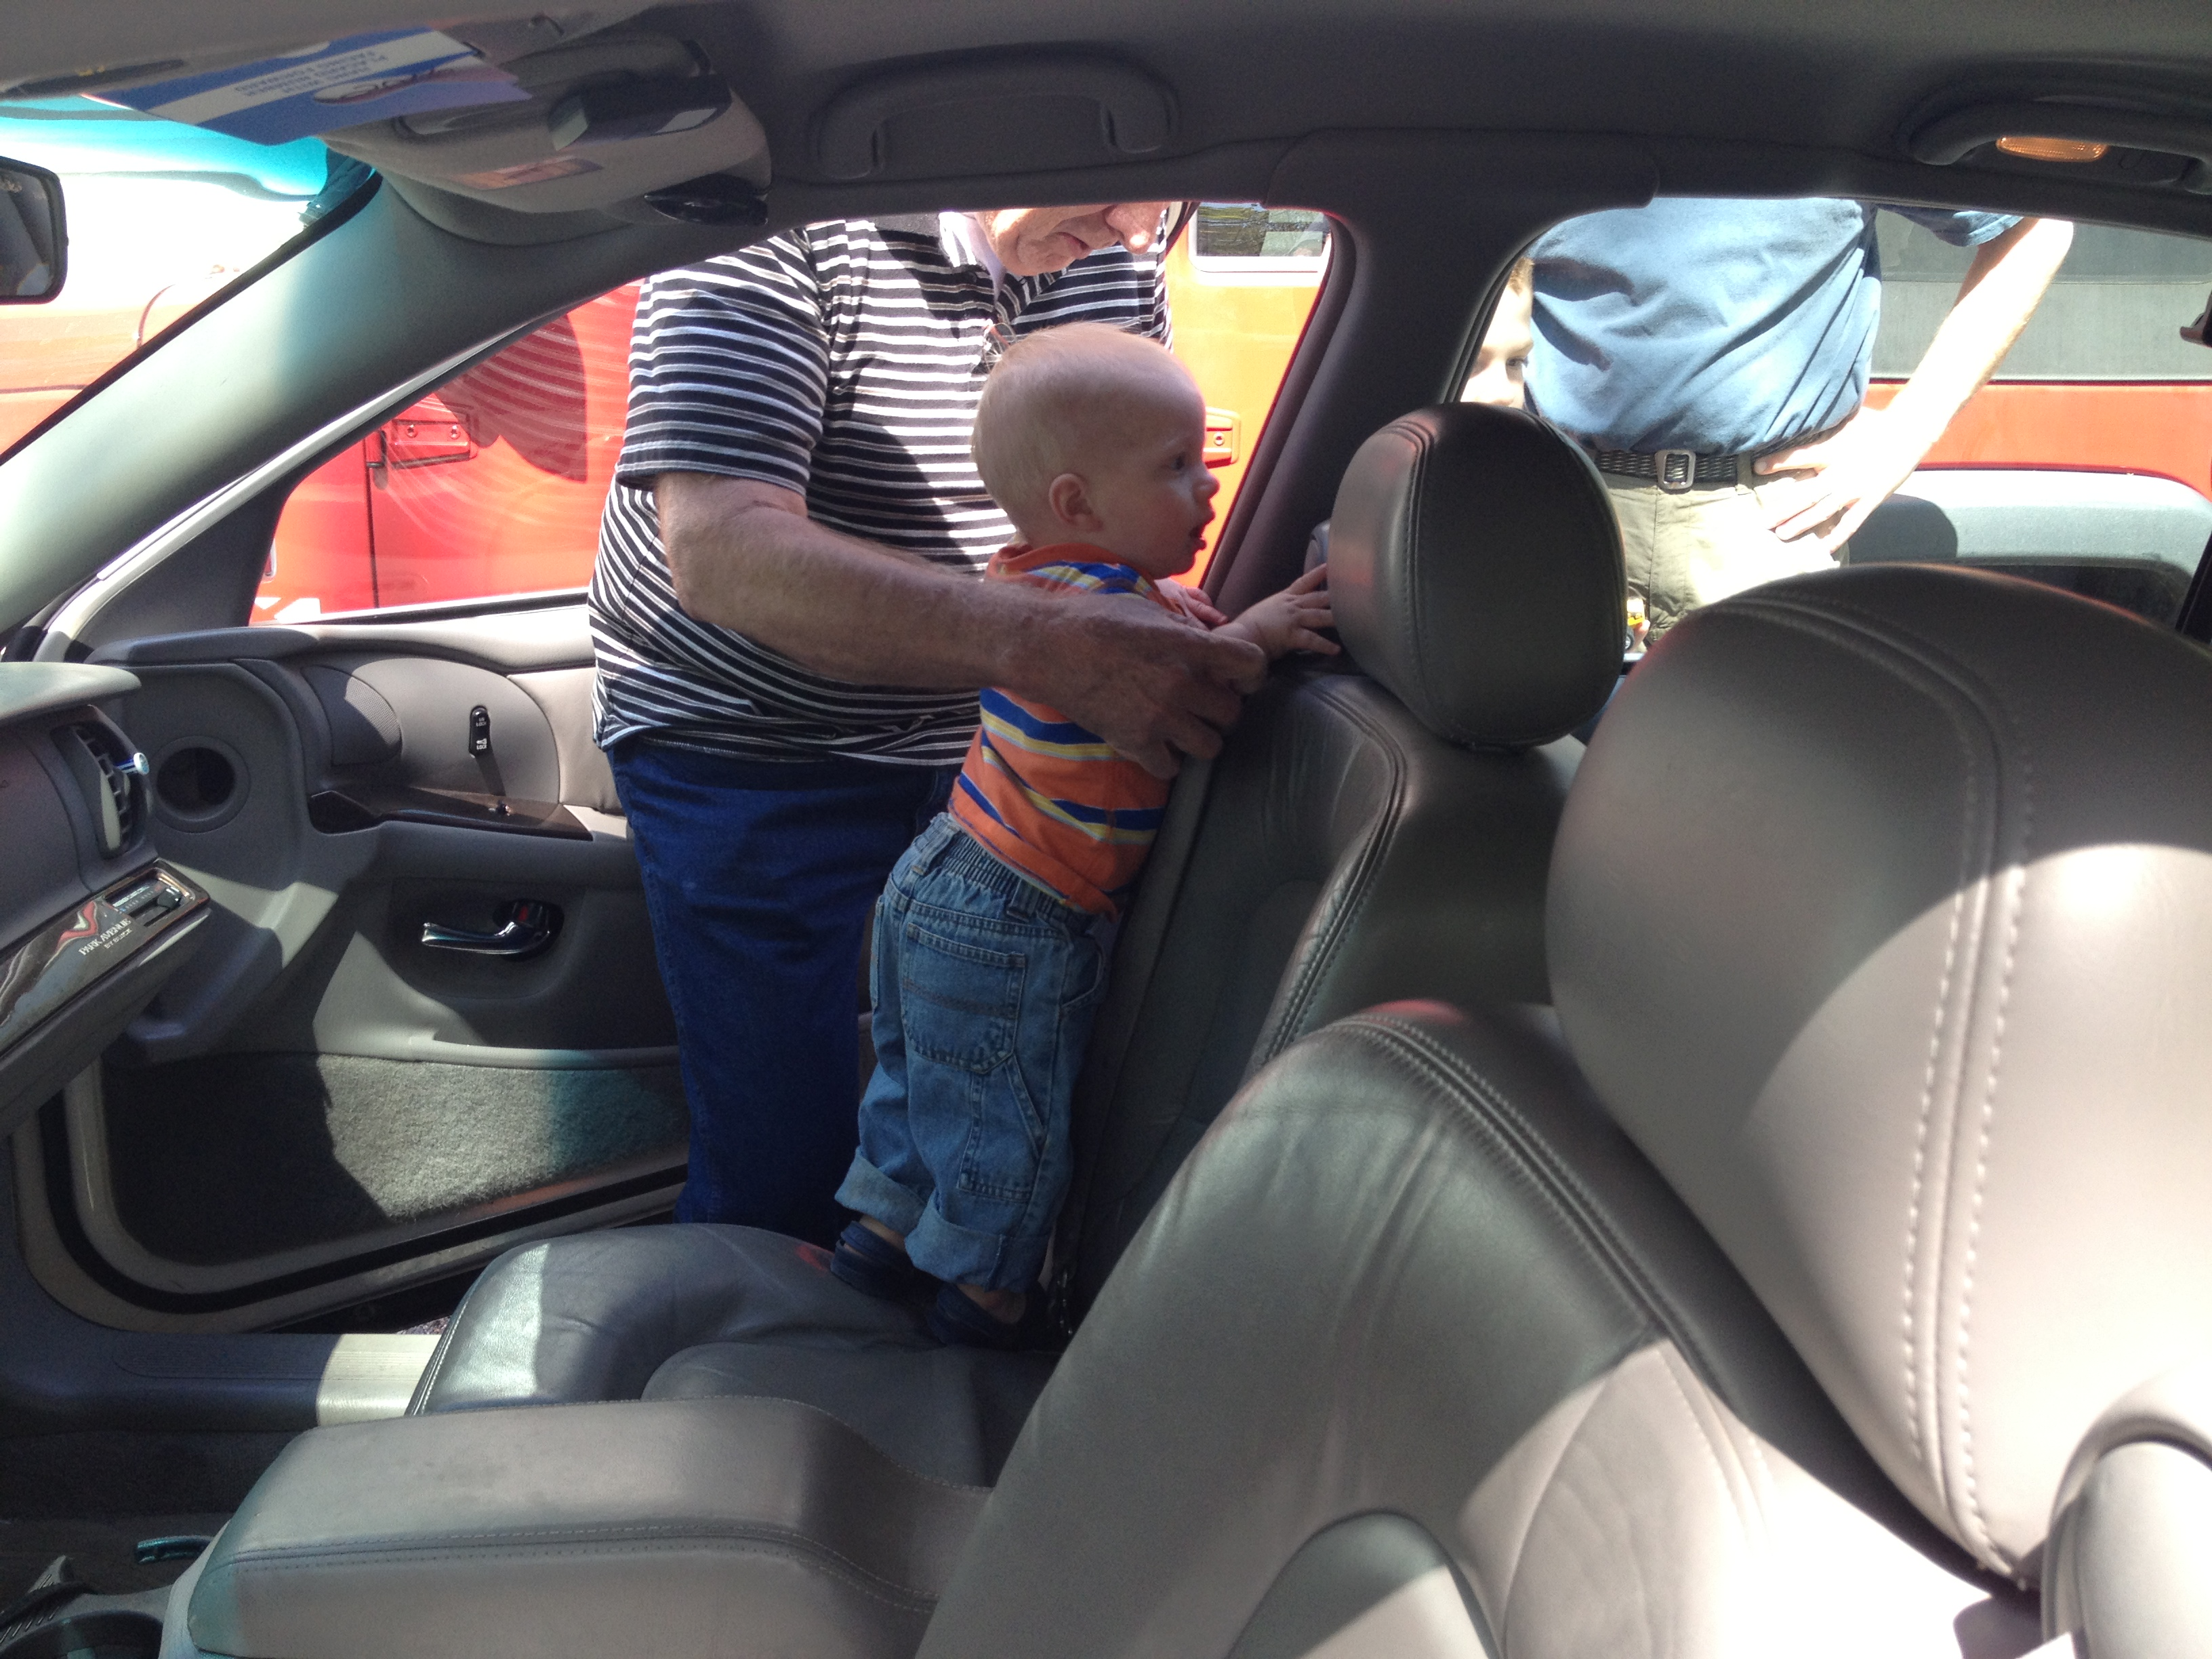 Kolby climbed into Grandpa and Grandma's car as they were loading up. He loved Gidget and was trying to pet him.